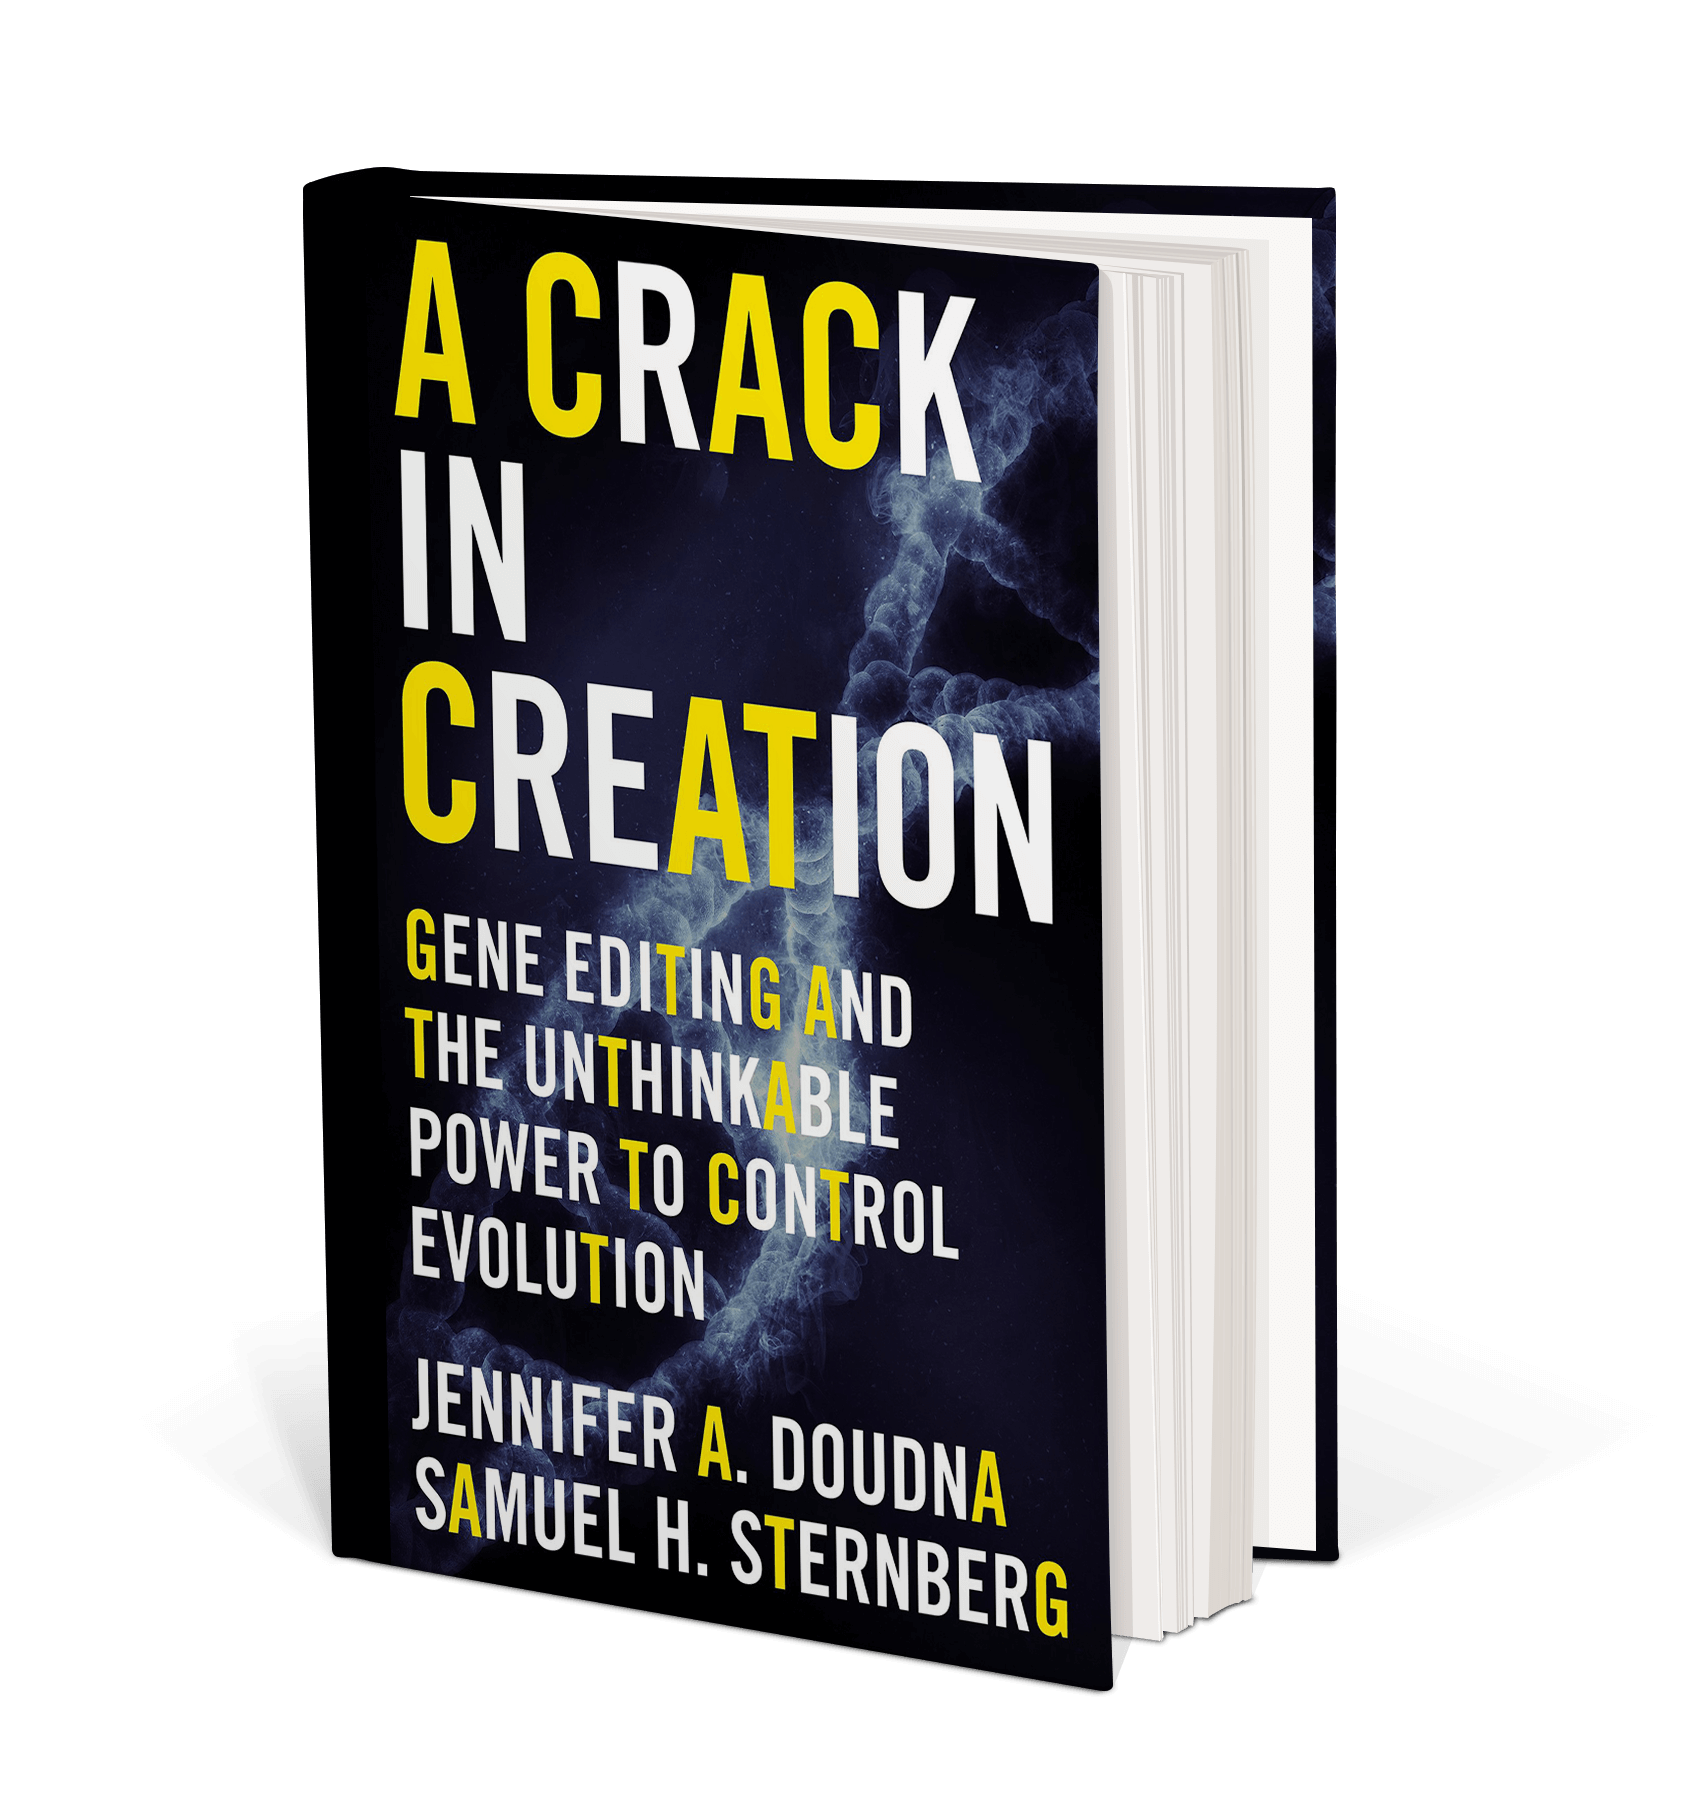 Cover art A Crack in Creation: Gene Editing and the Unthinkable Power to Control Evolution